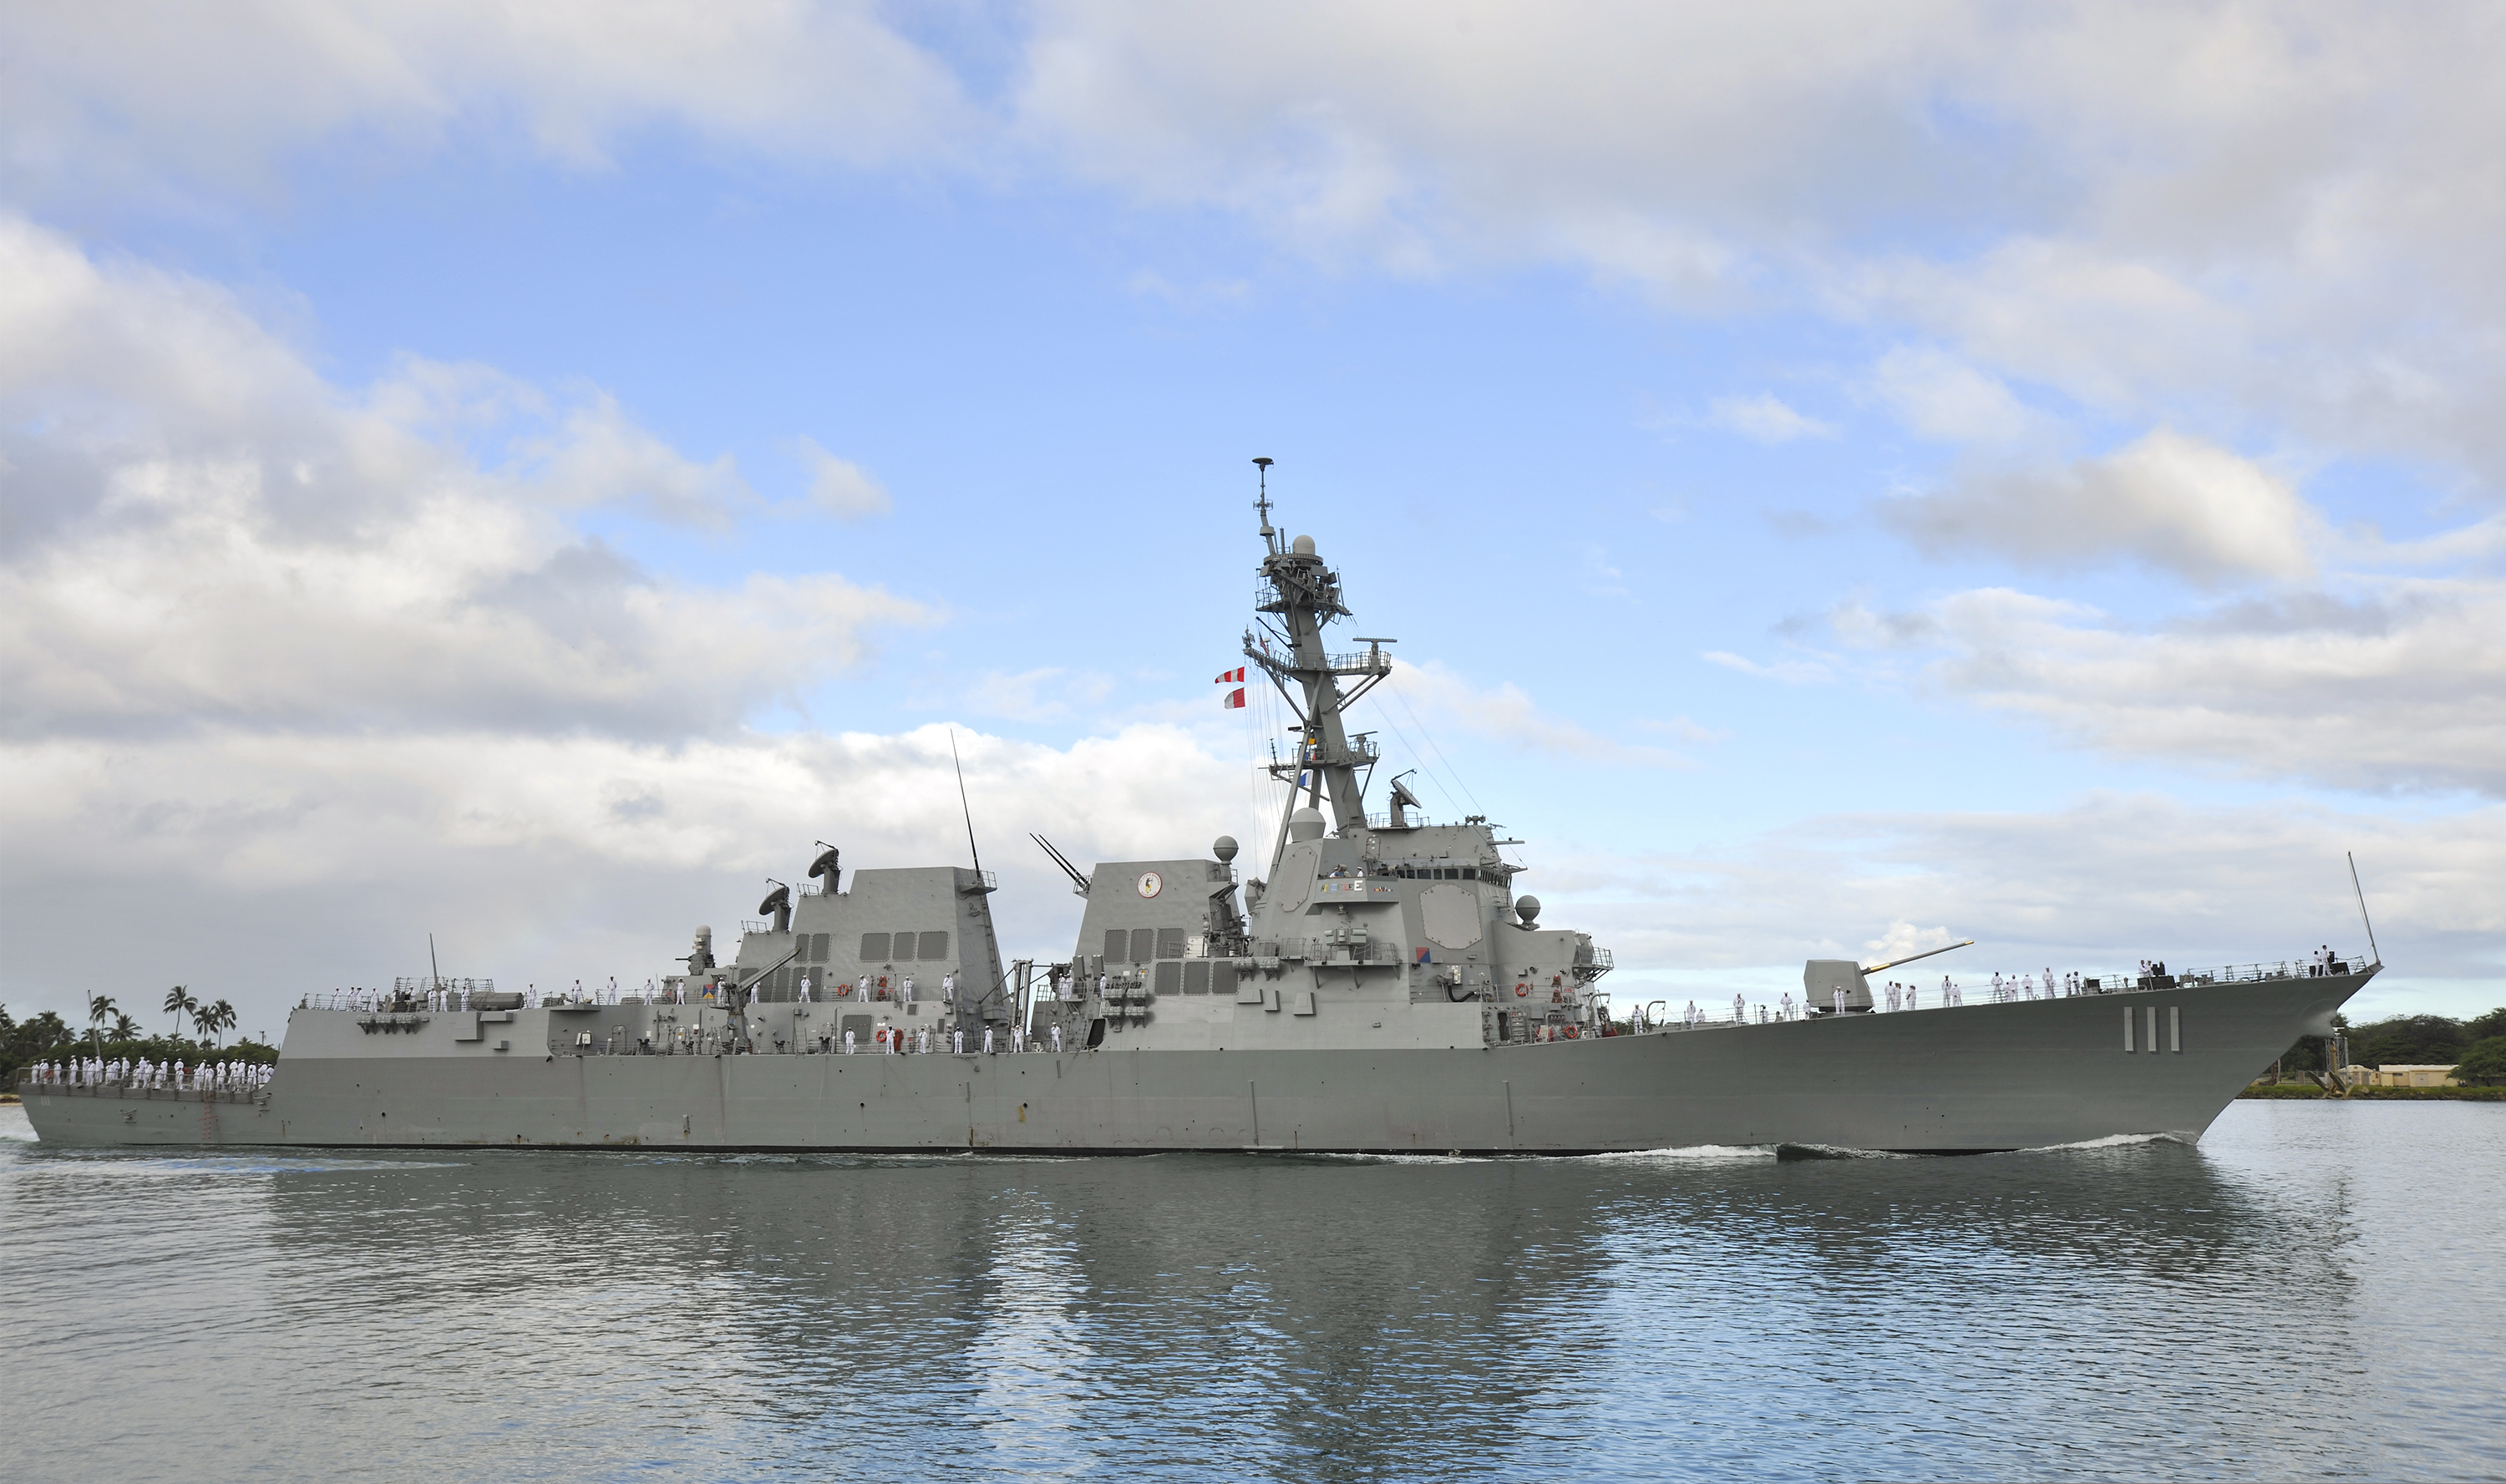 A flight IIA Arleigh Burke-class destroyer, The USS Spruance (DDG-111) arrives at Pearl Harbor to participate in RIMPAC 2014. Photo: Diana Quinlan, USN.